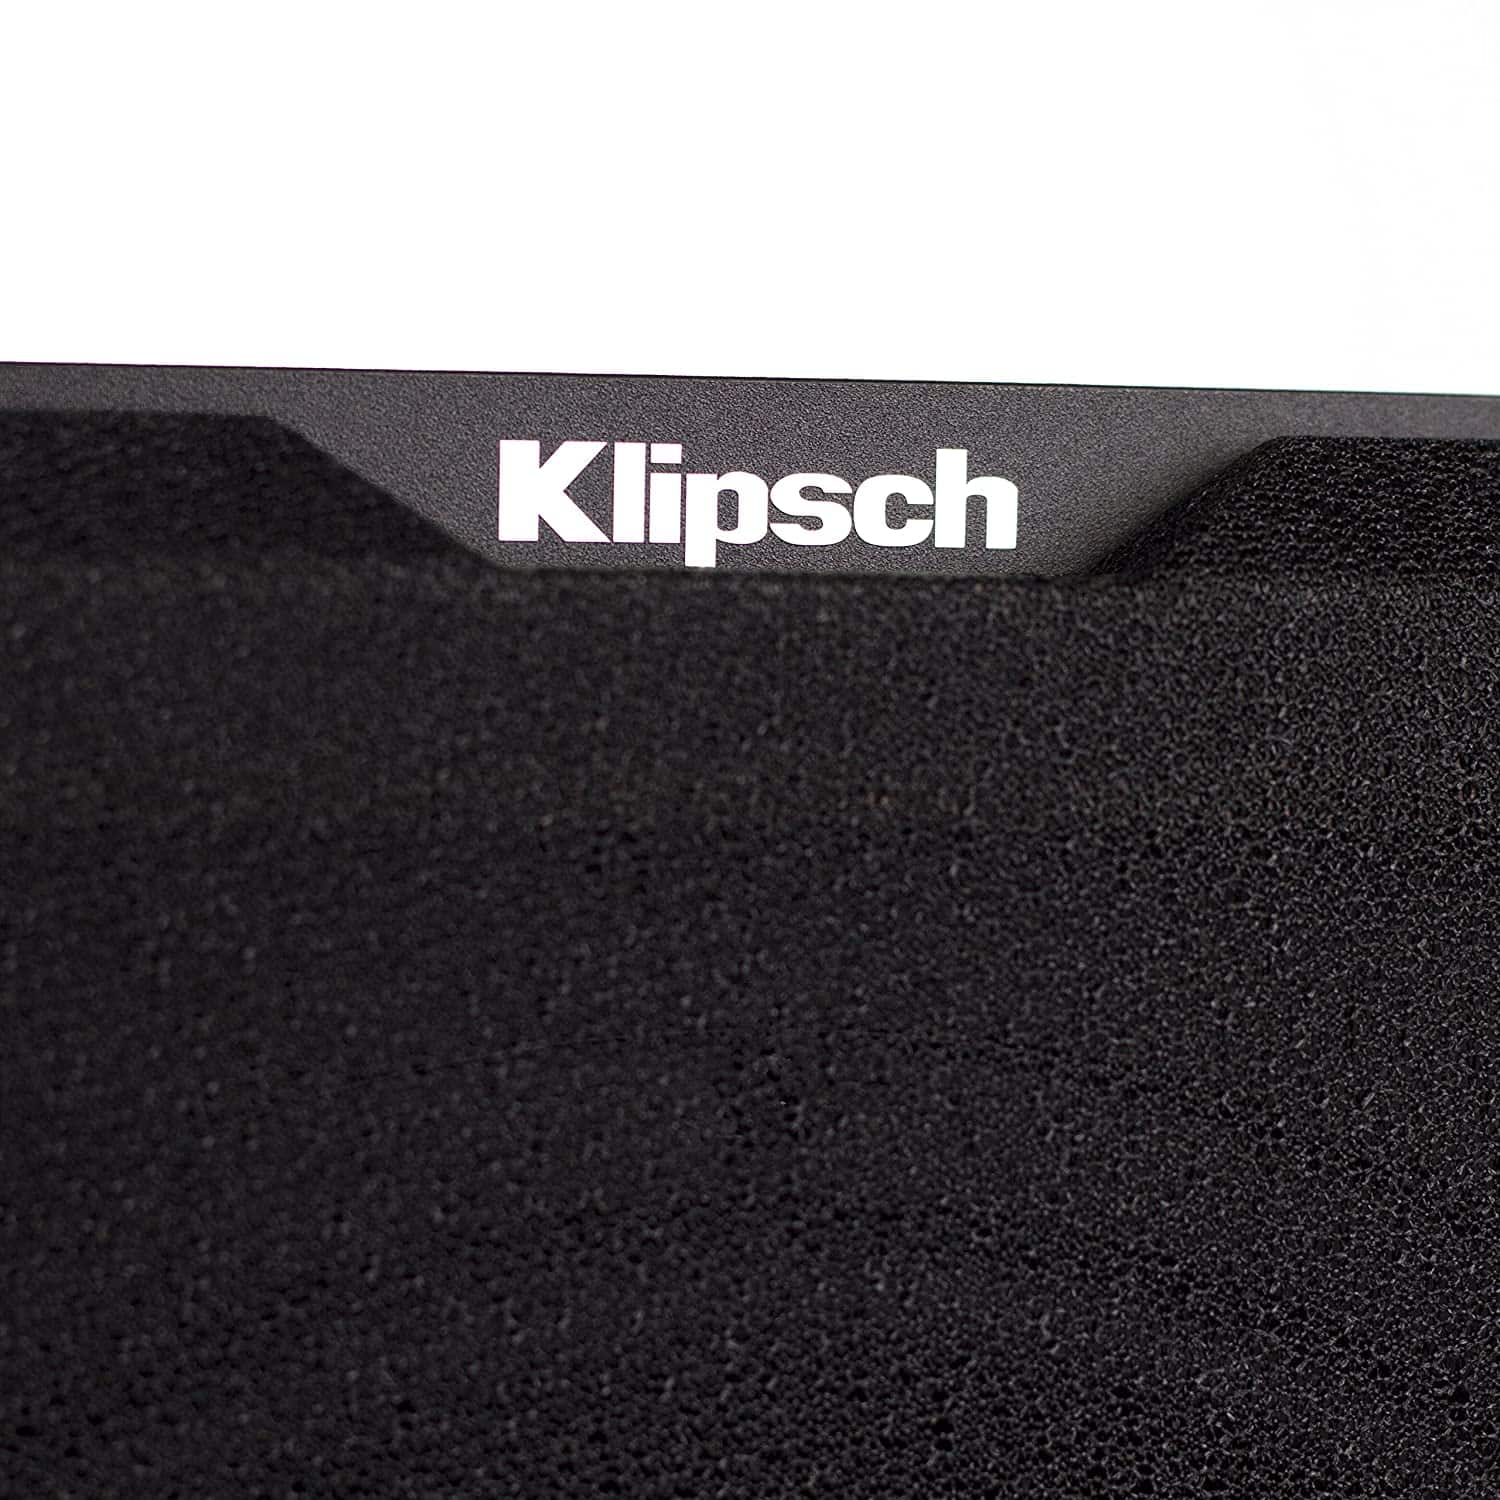 Klipsch K-100SW 10-Inch Powered Subwoofer $137 + Free Shipping